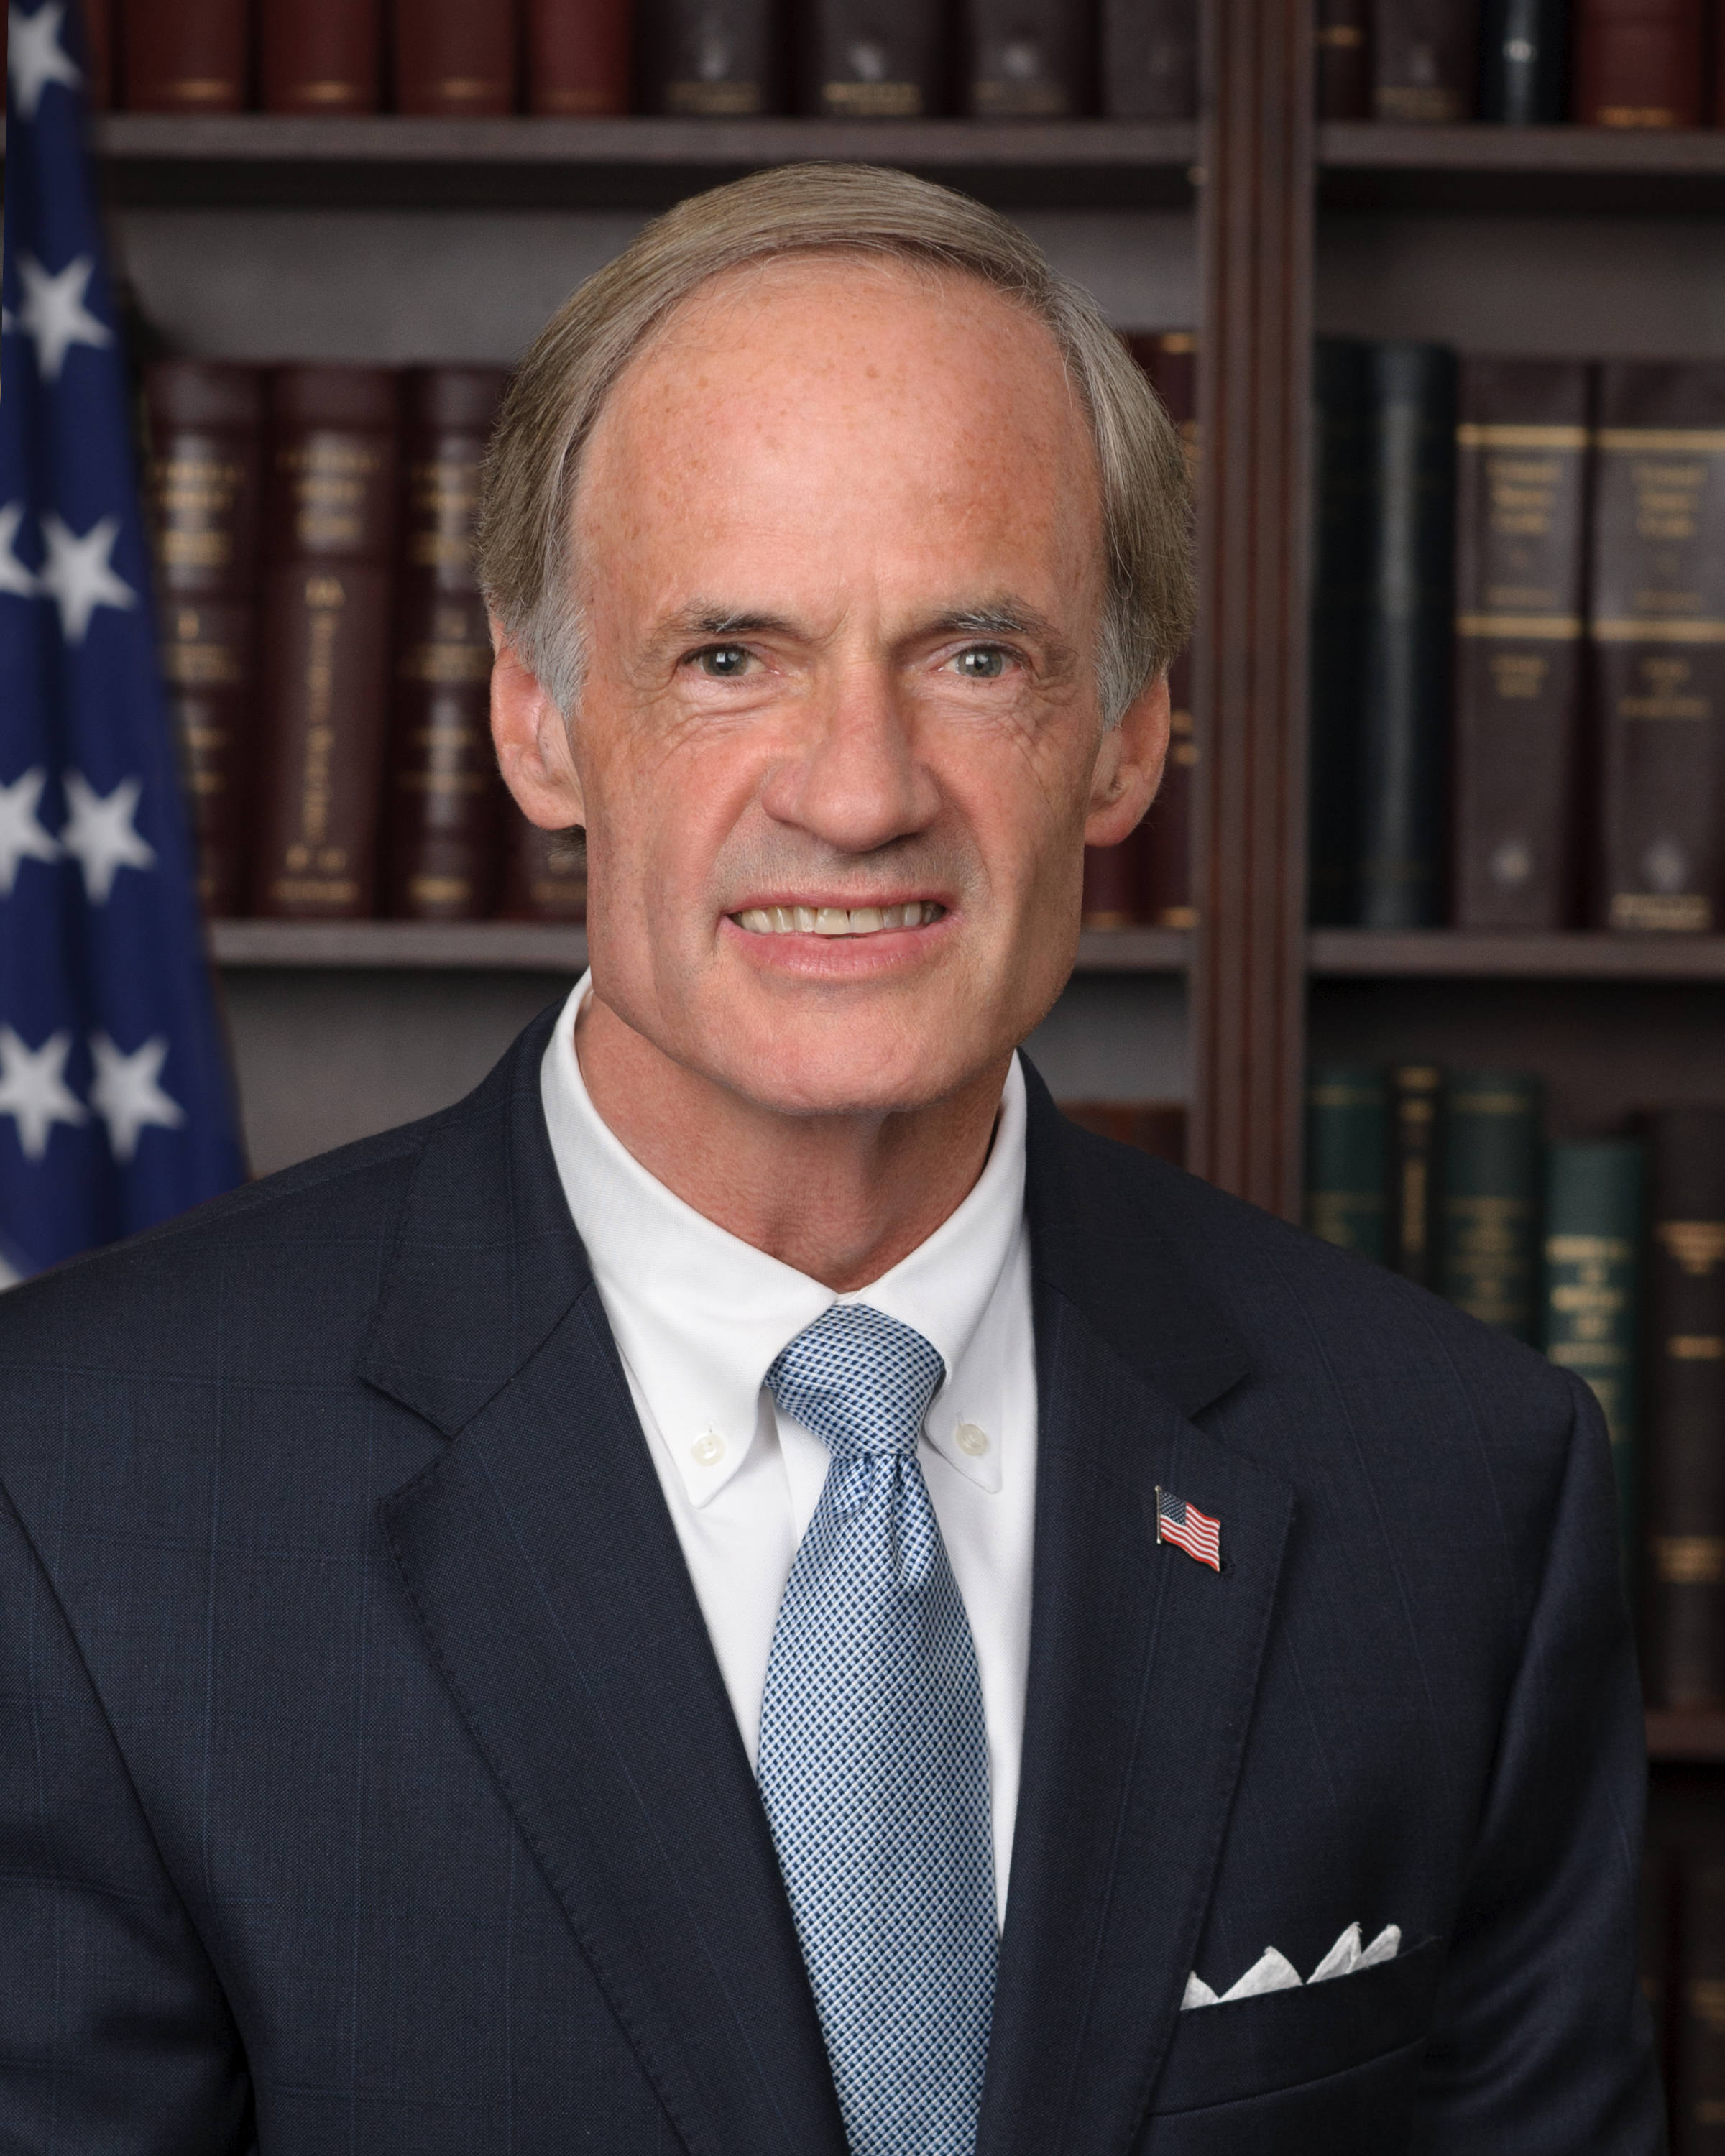 Tom Carper httpsuploadwikimediaorgwikipediacommons88